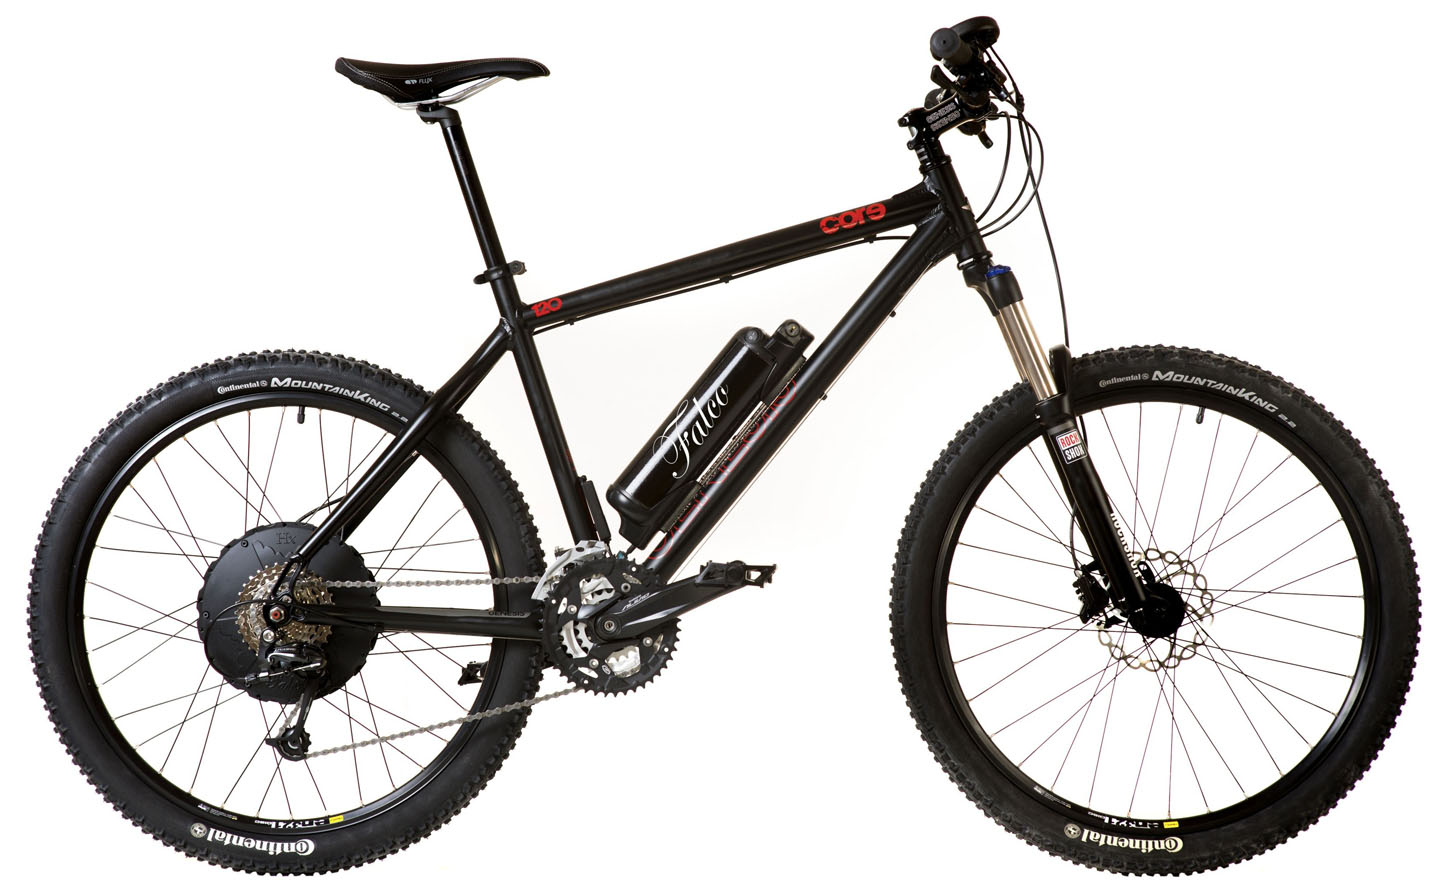 Falco 500W Propulsion System Installed on a Mountain Bike